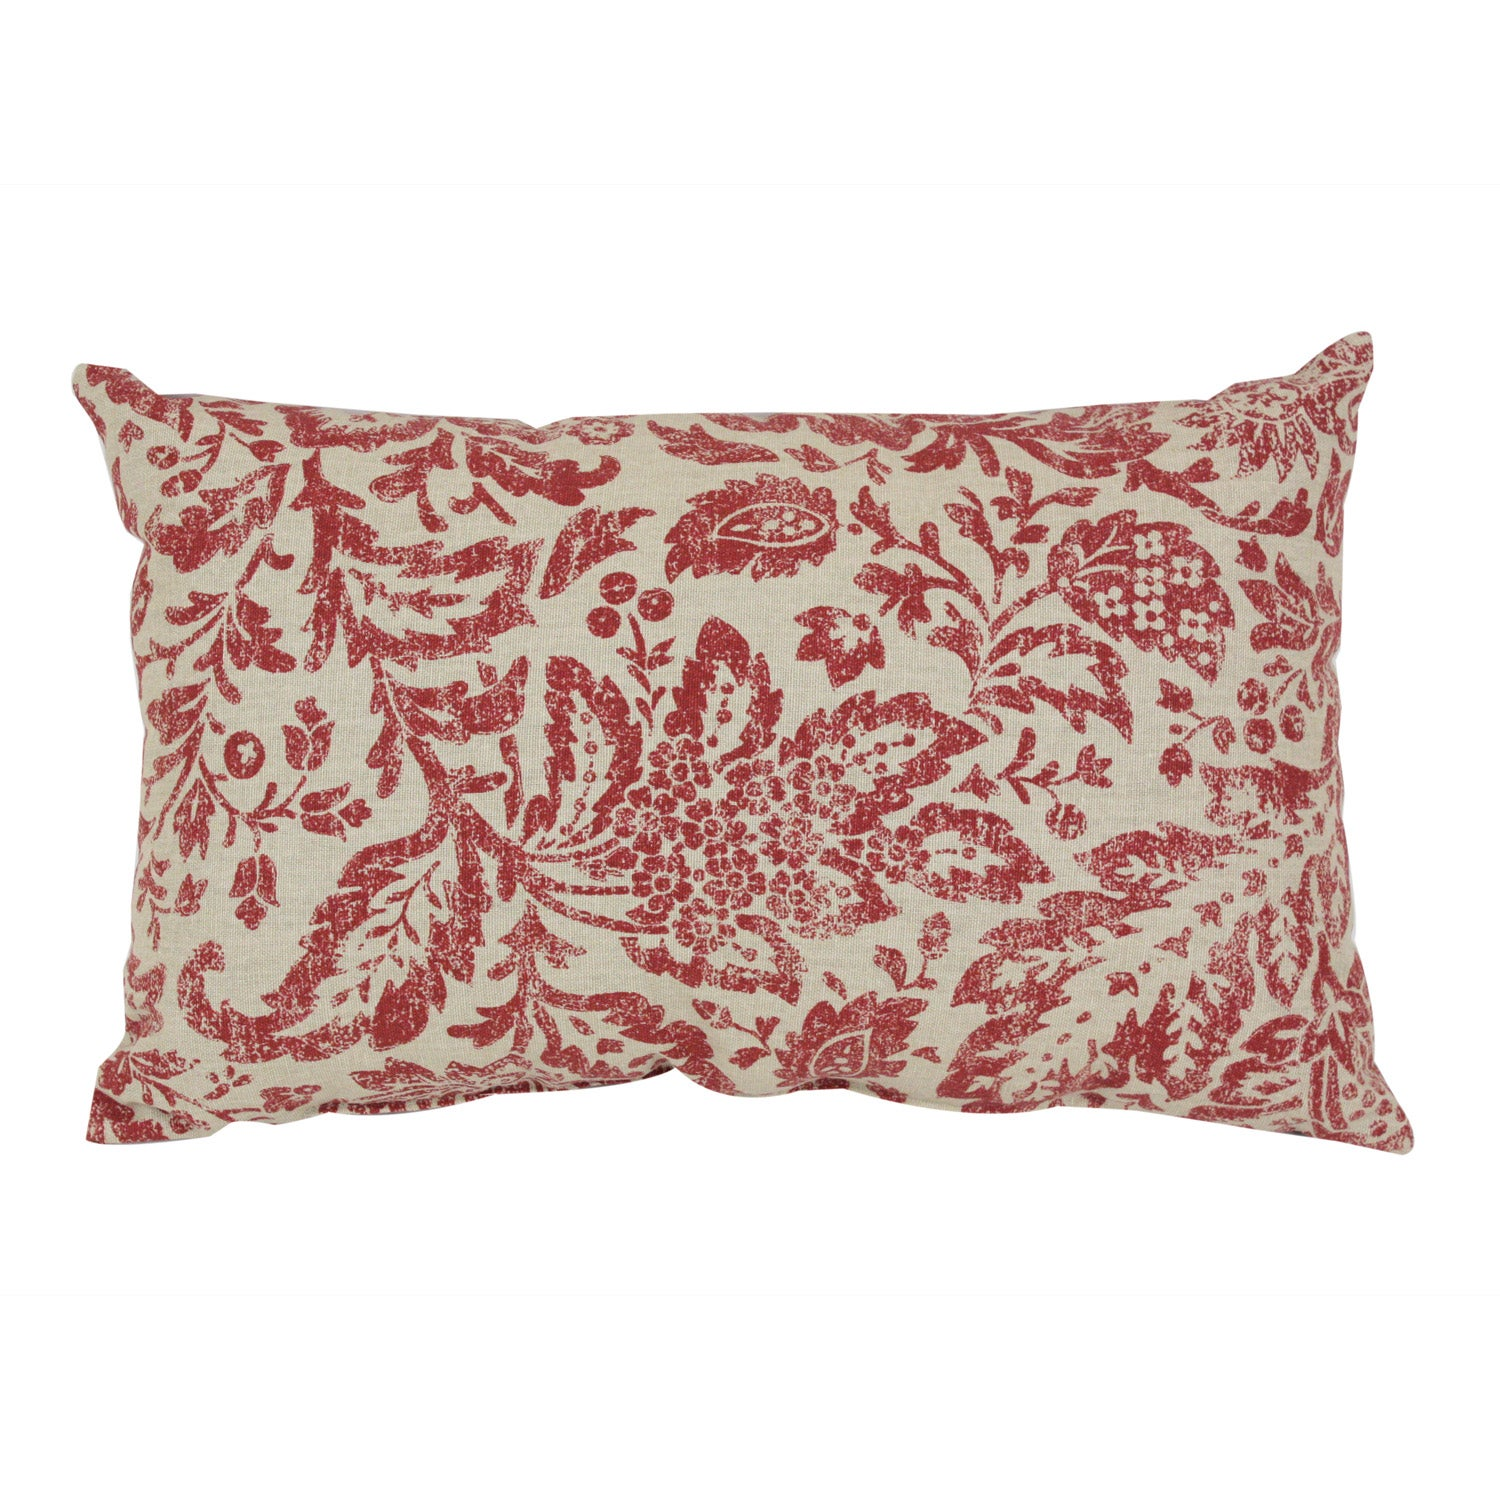 Pillow Perfect Red/ Tan Damask Throw Pillow